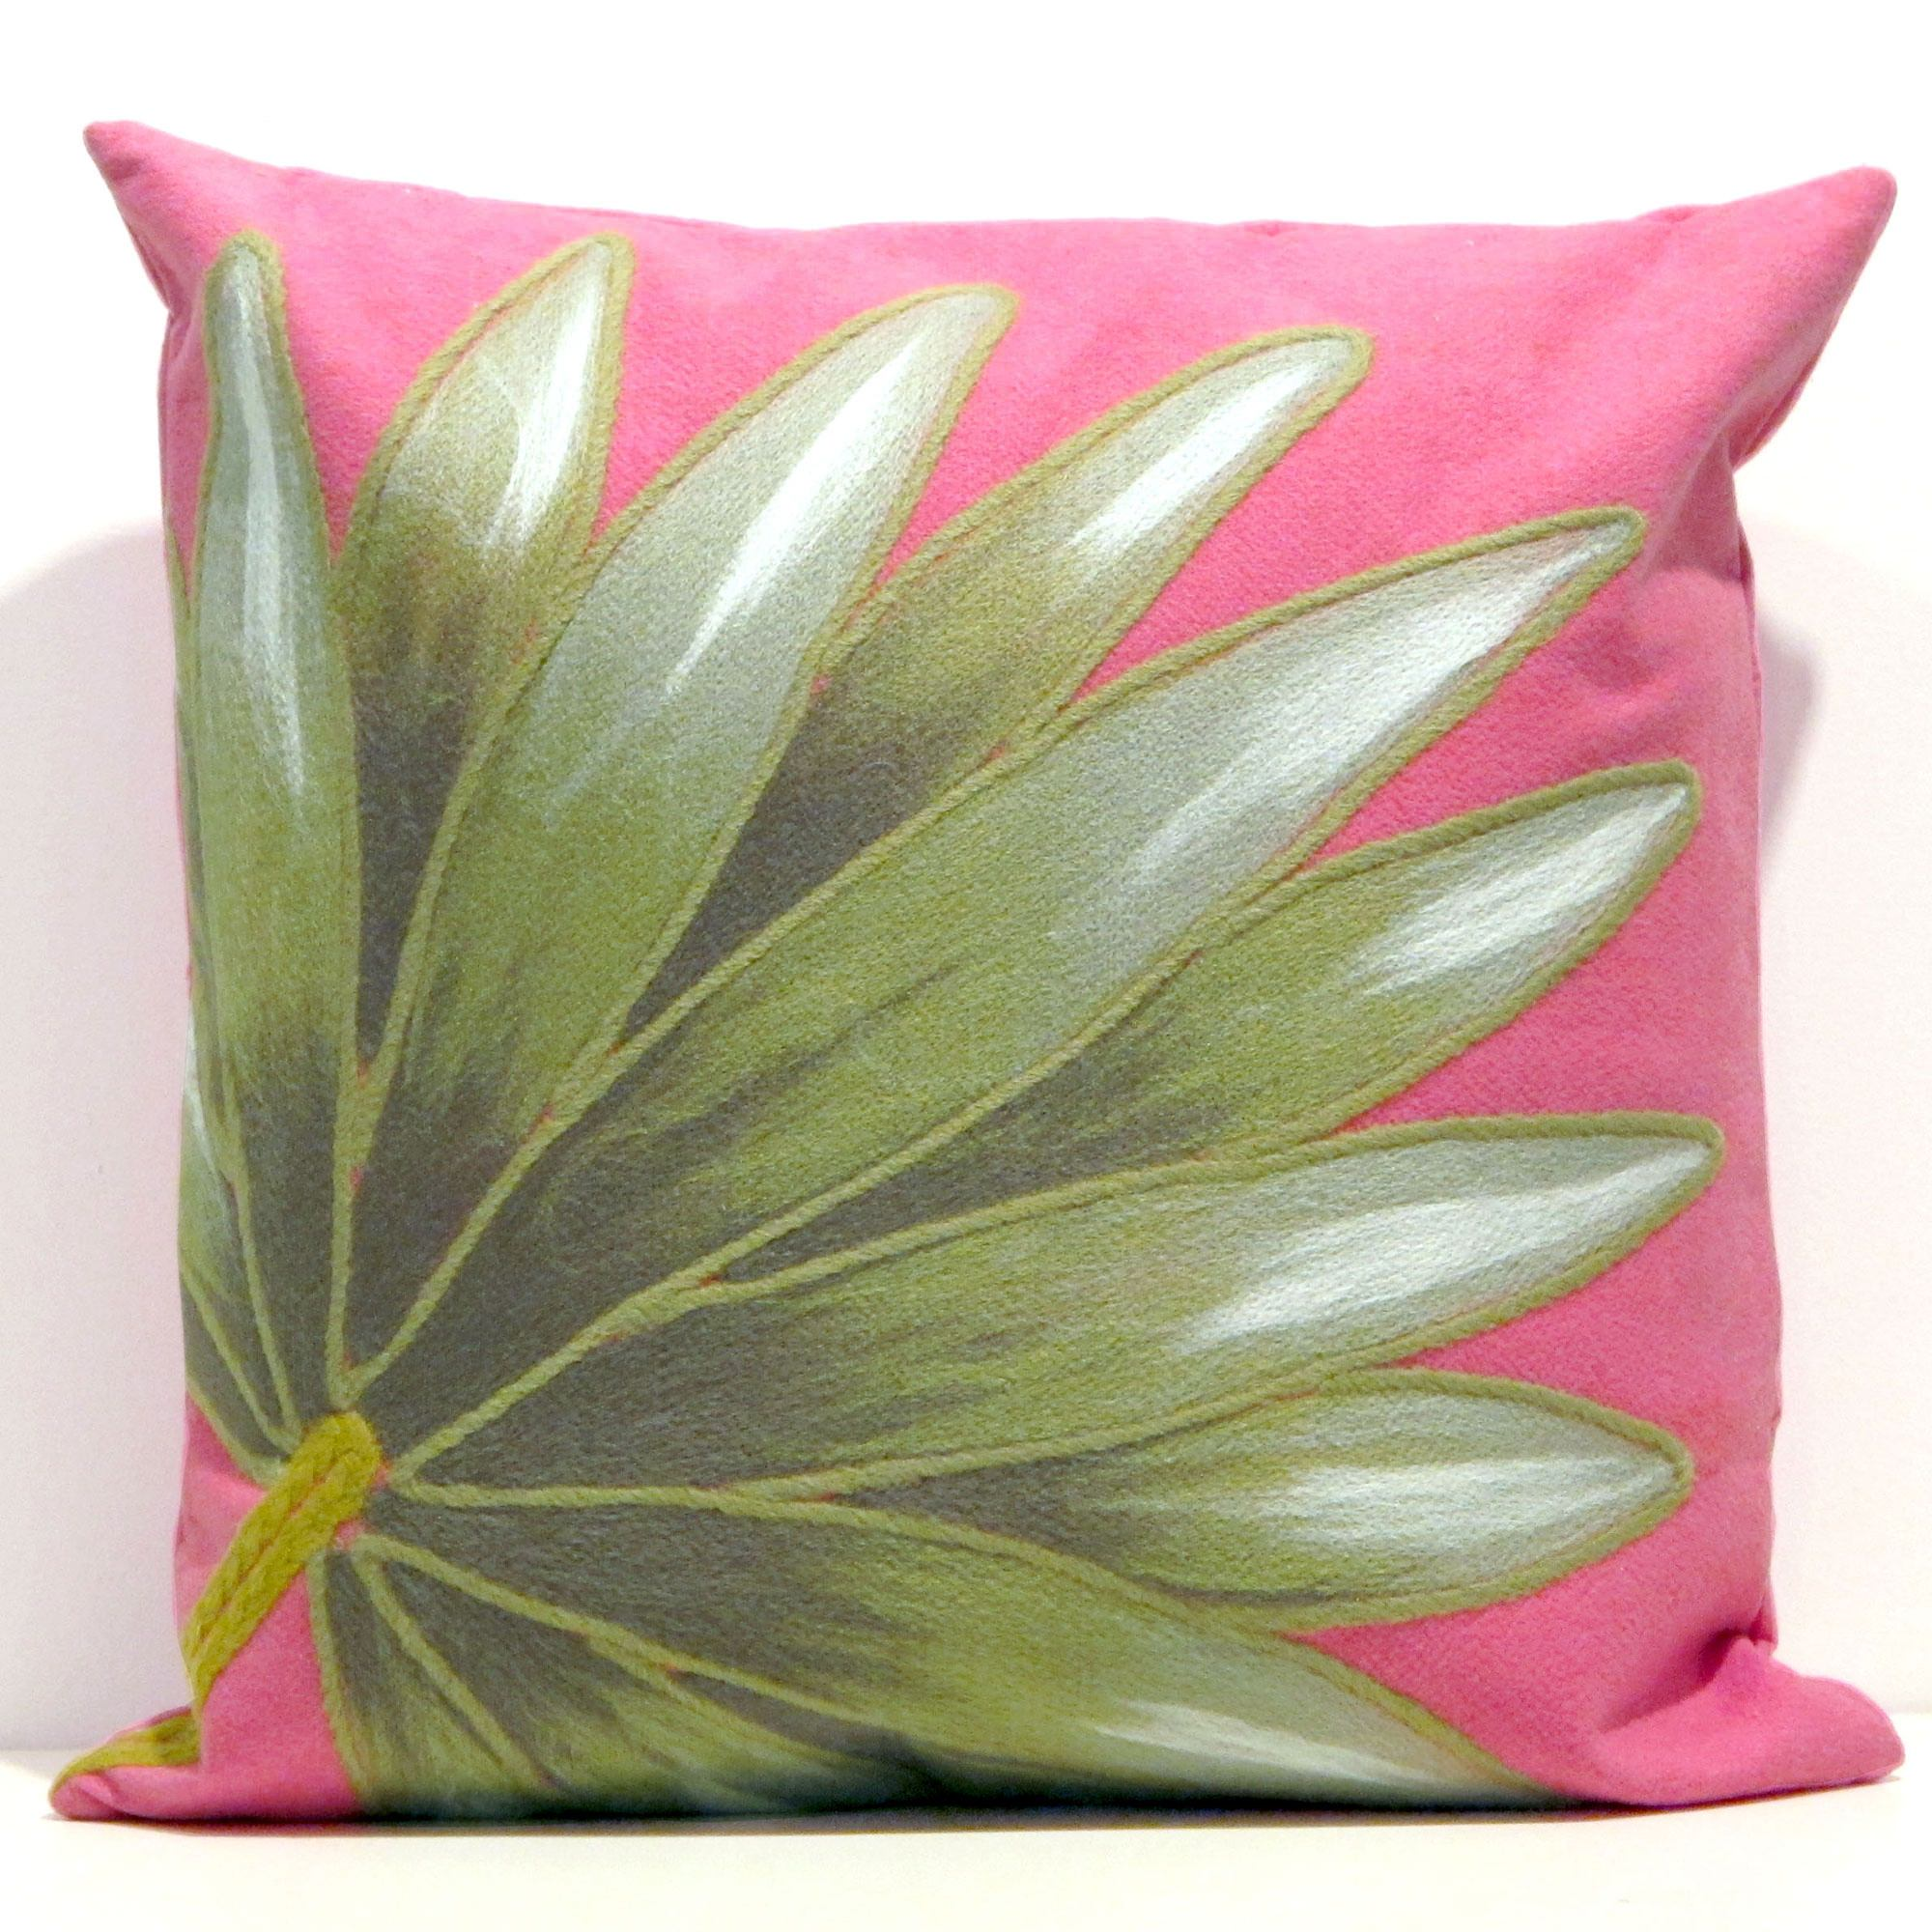 Pink Outdoor Pillows Design Selections  HomesFeed